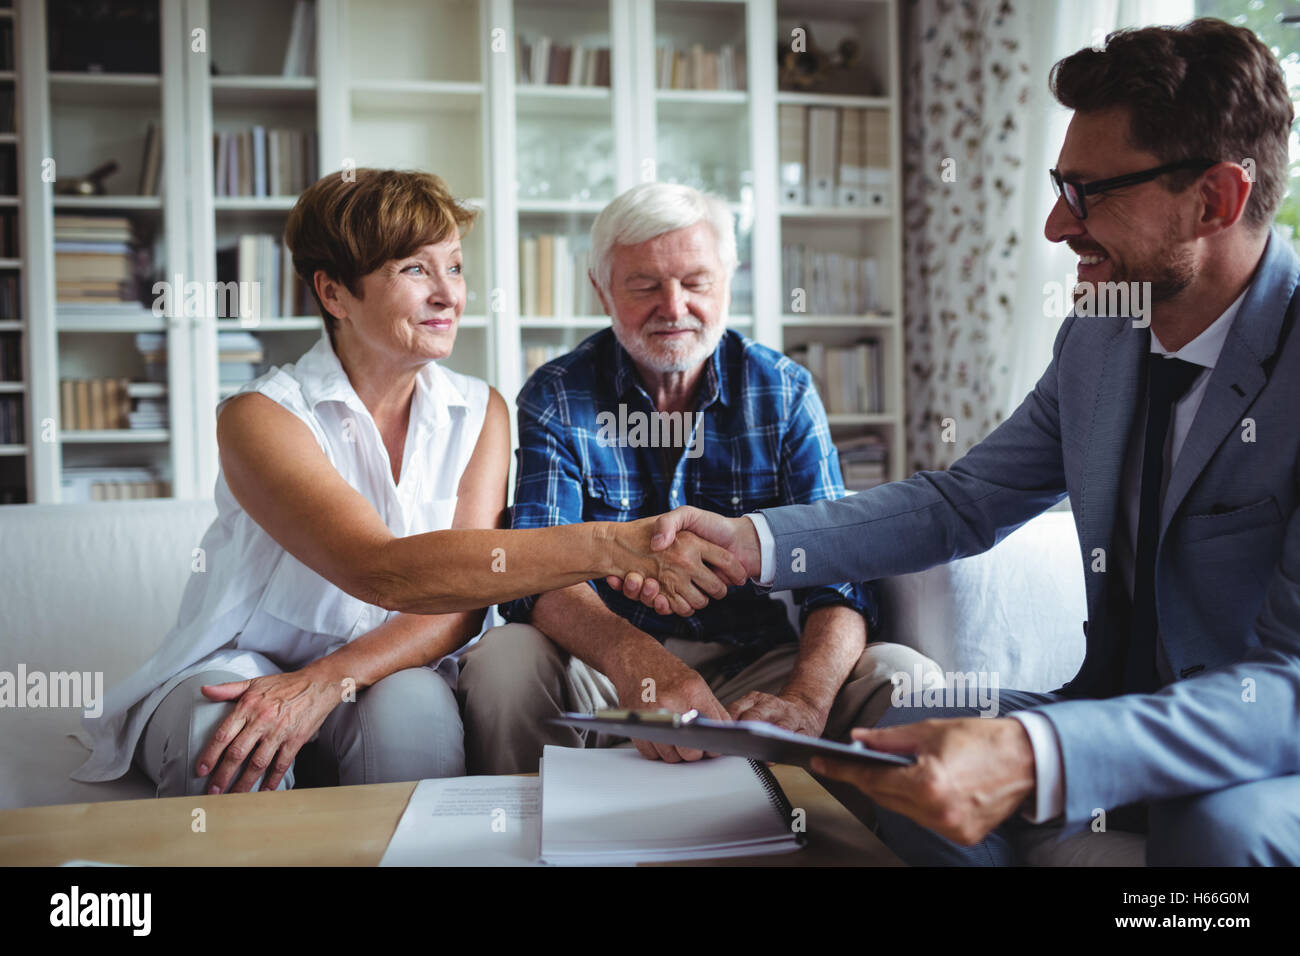 Financial advisor shaking hands with senior woman - Stock Image